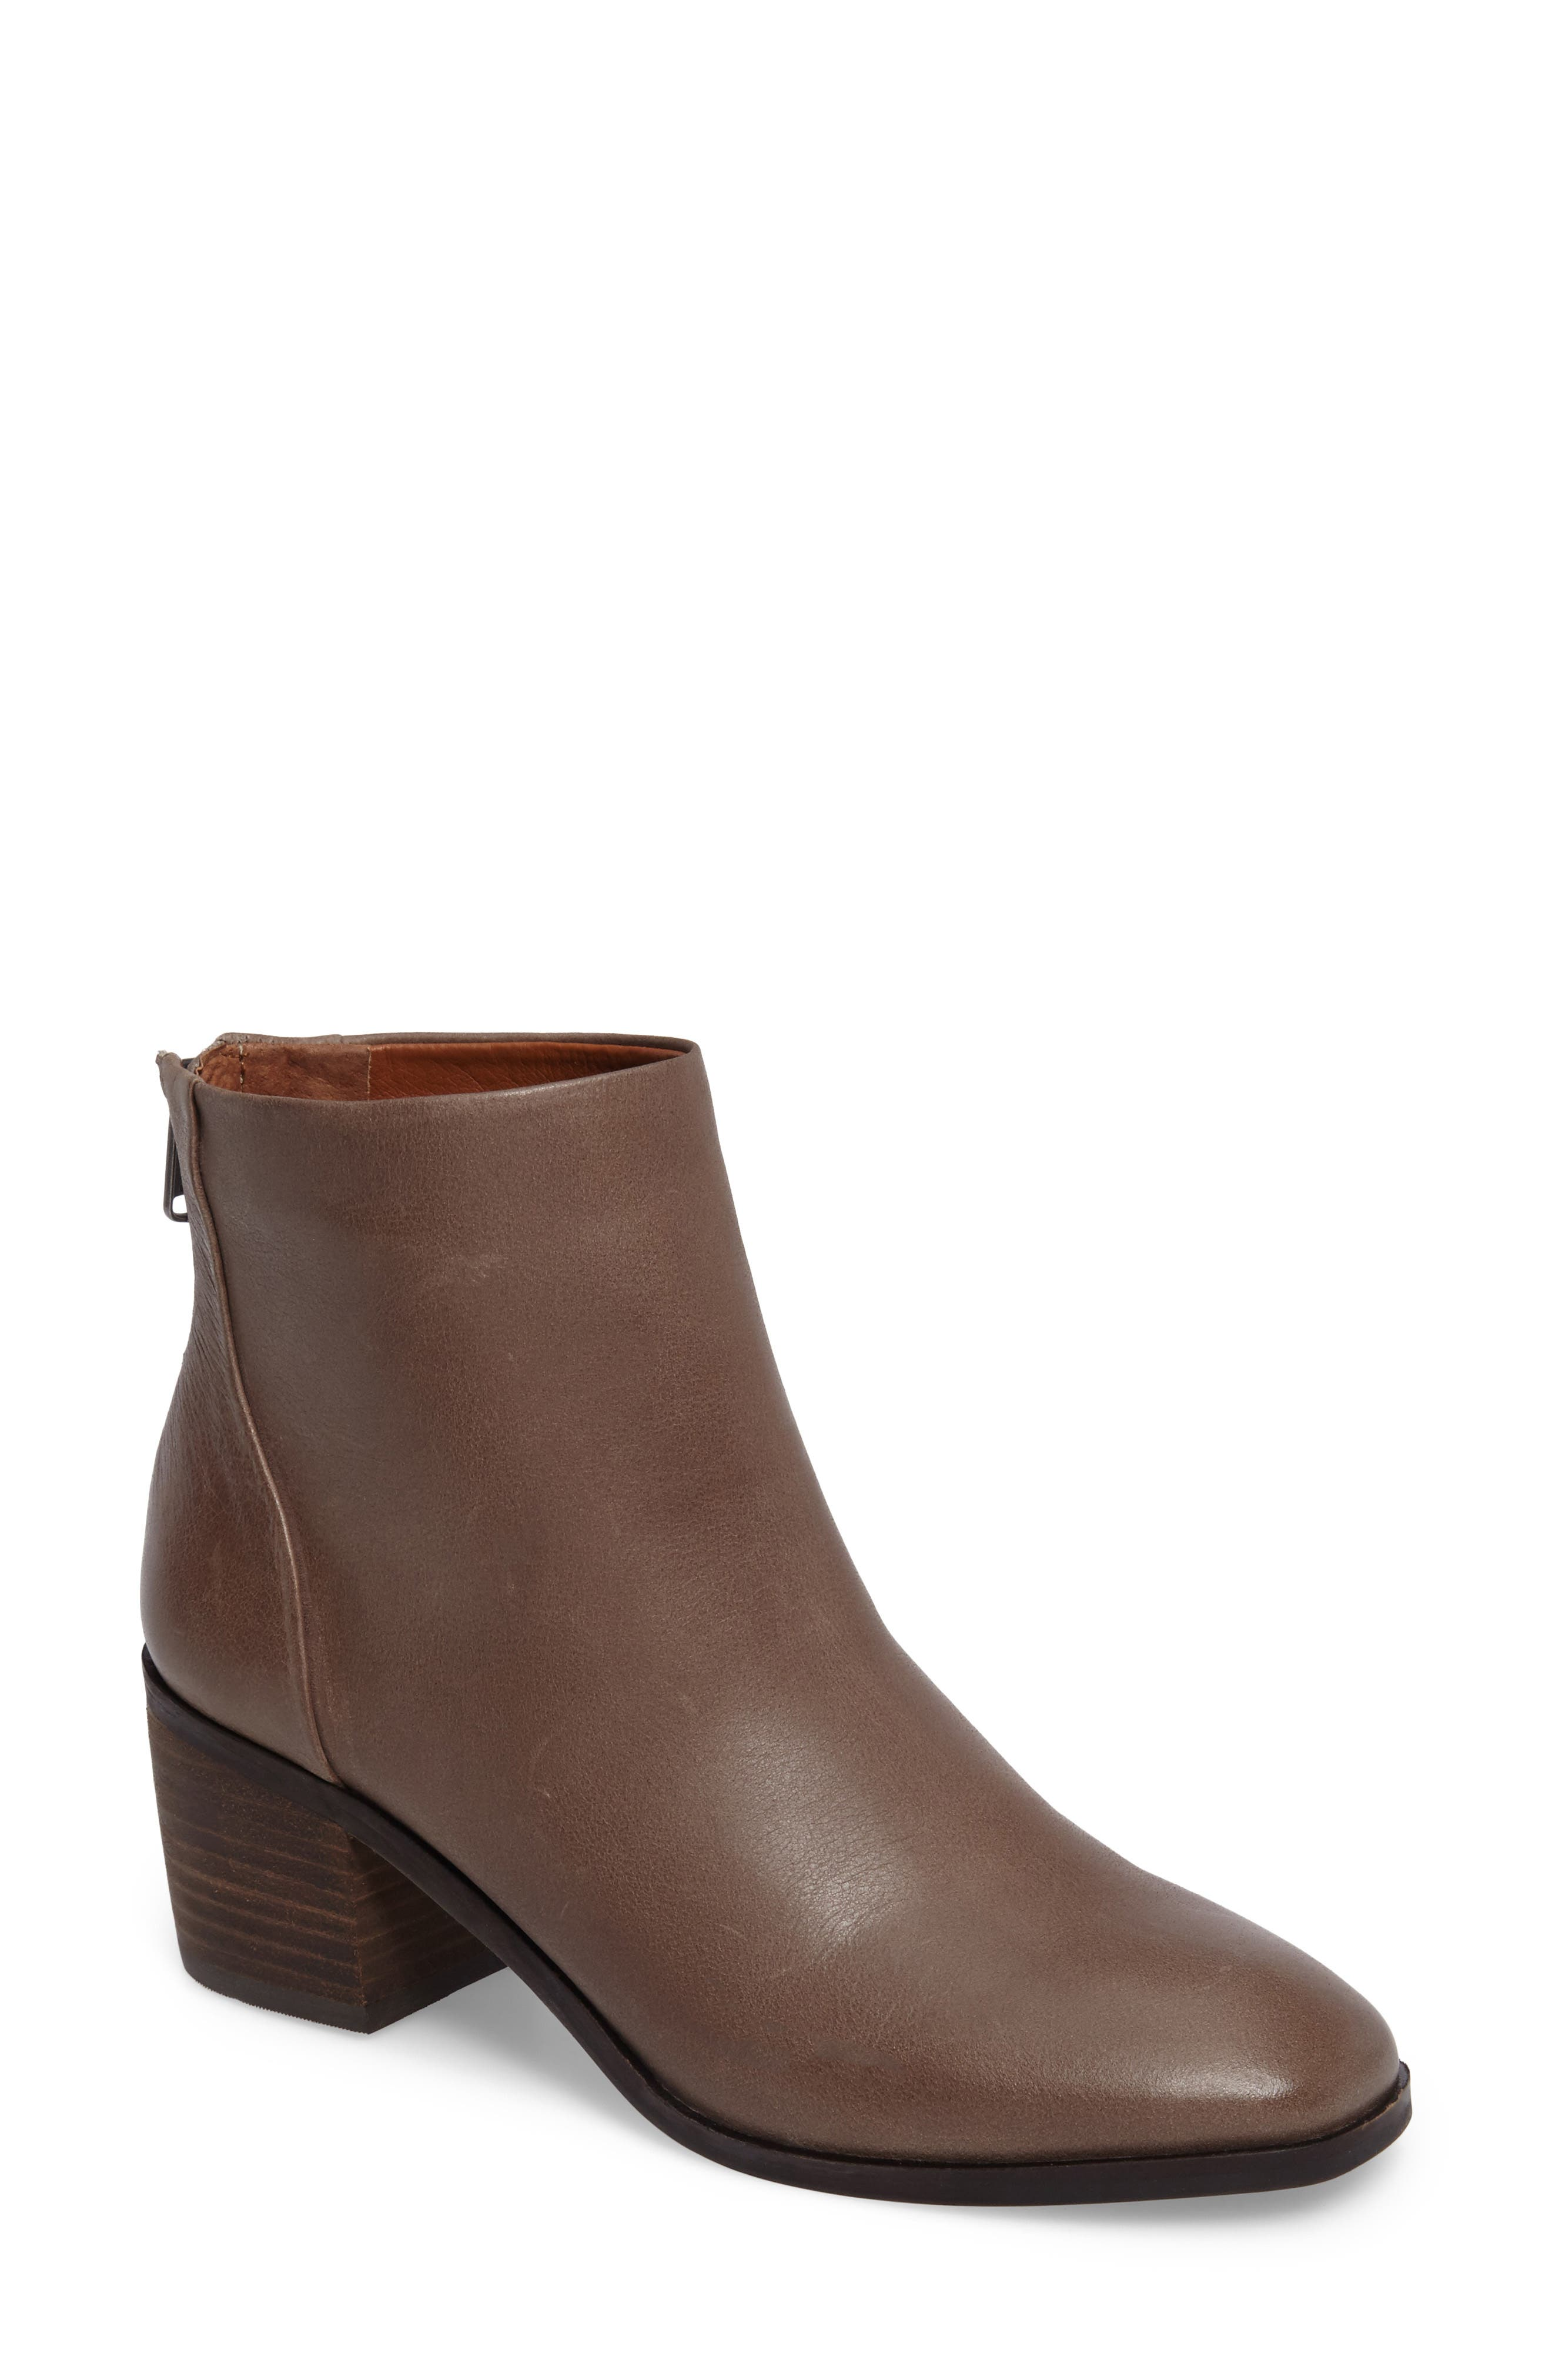 Alternate Image 1 Selected - Lucky Brand Magine Bootie (Women)